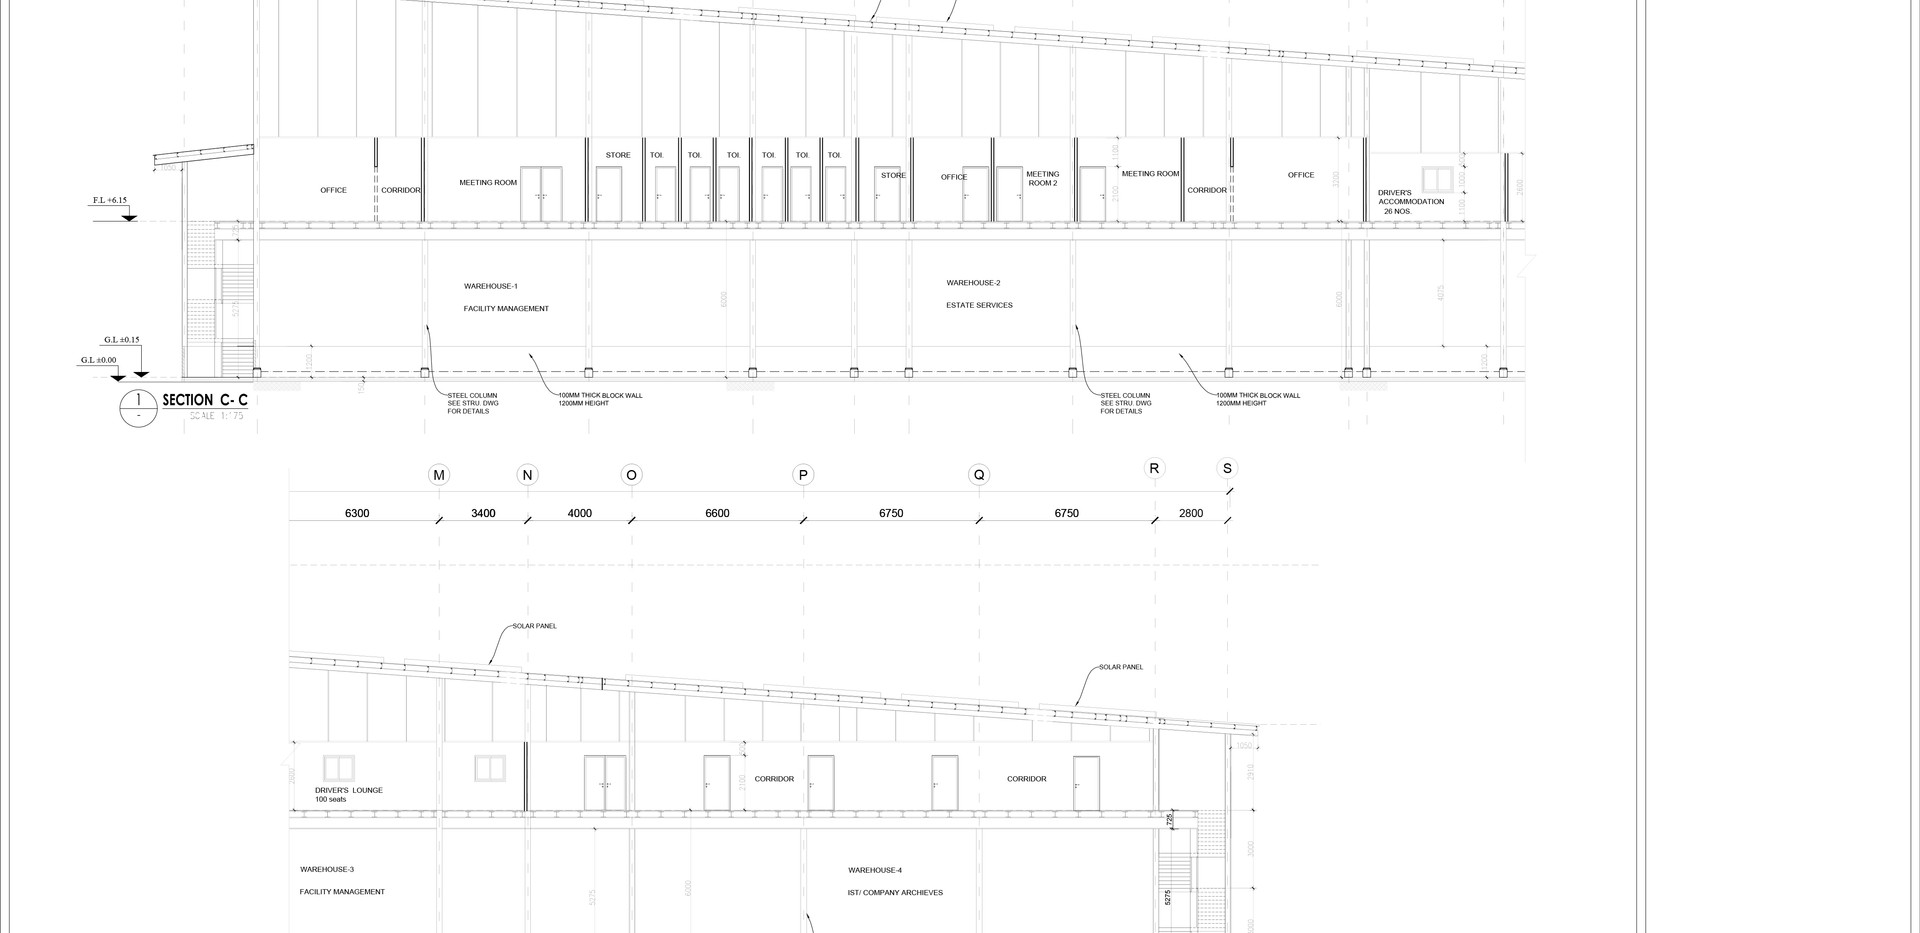 TUCN ARCHITECTURAL DRAWING (dragged) 5.jpg